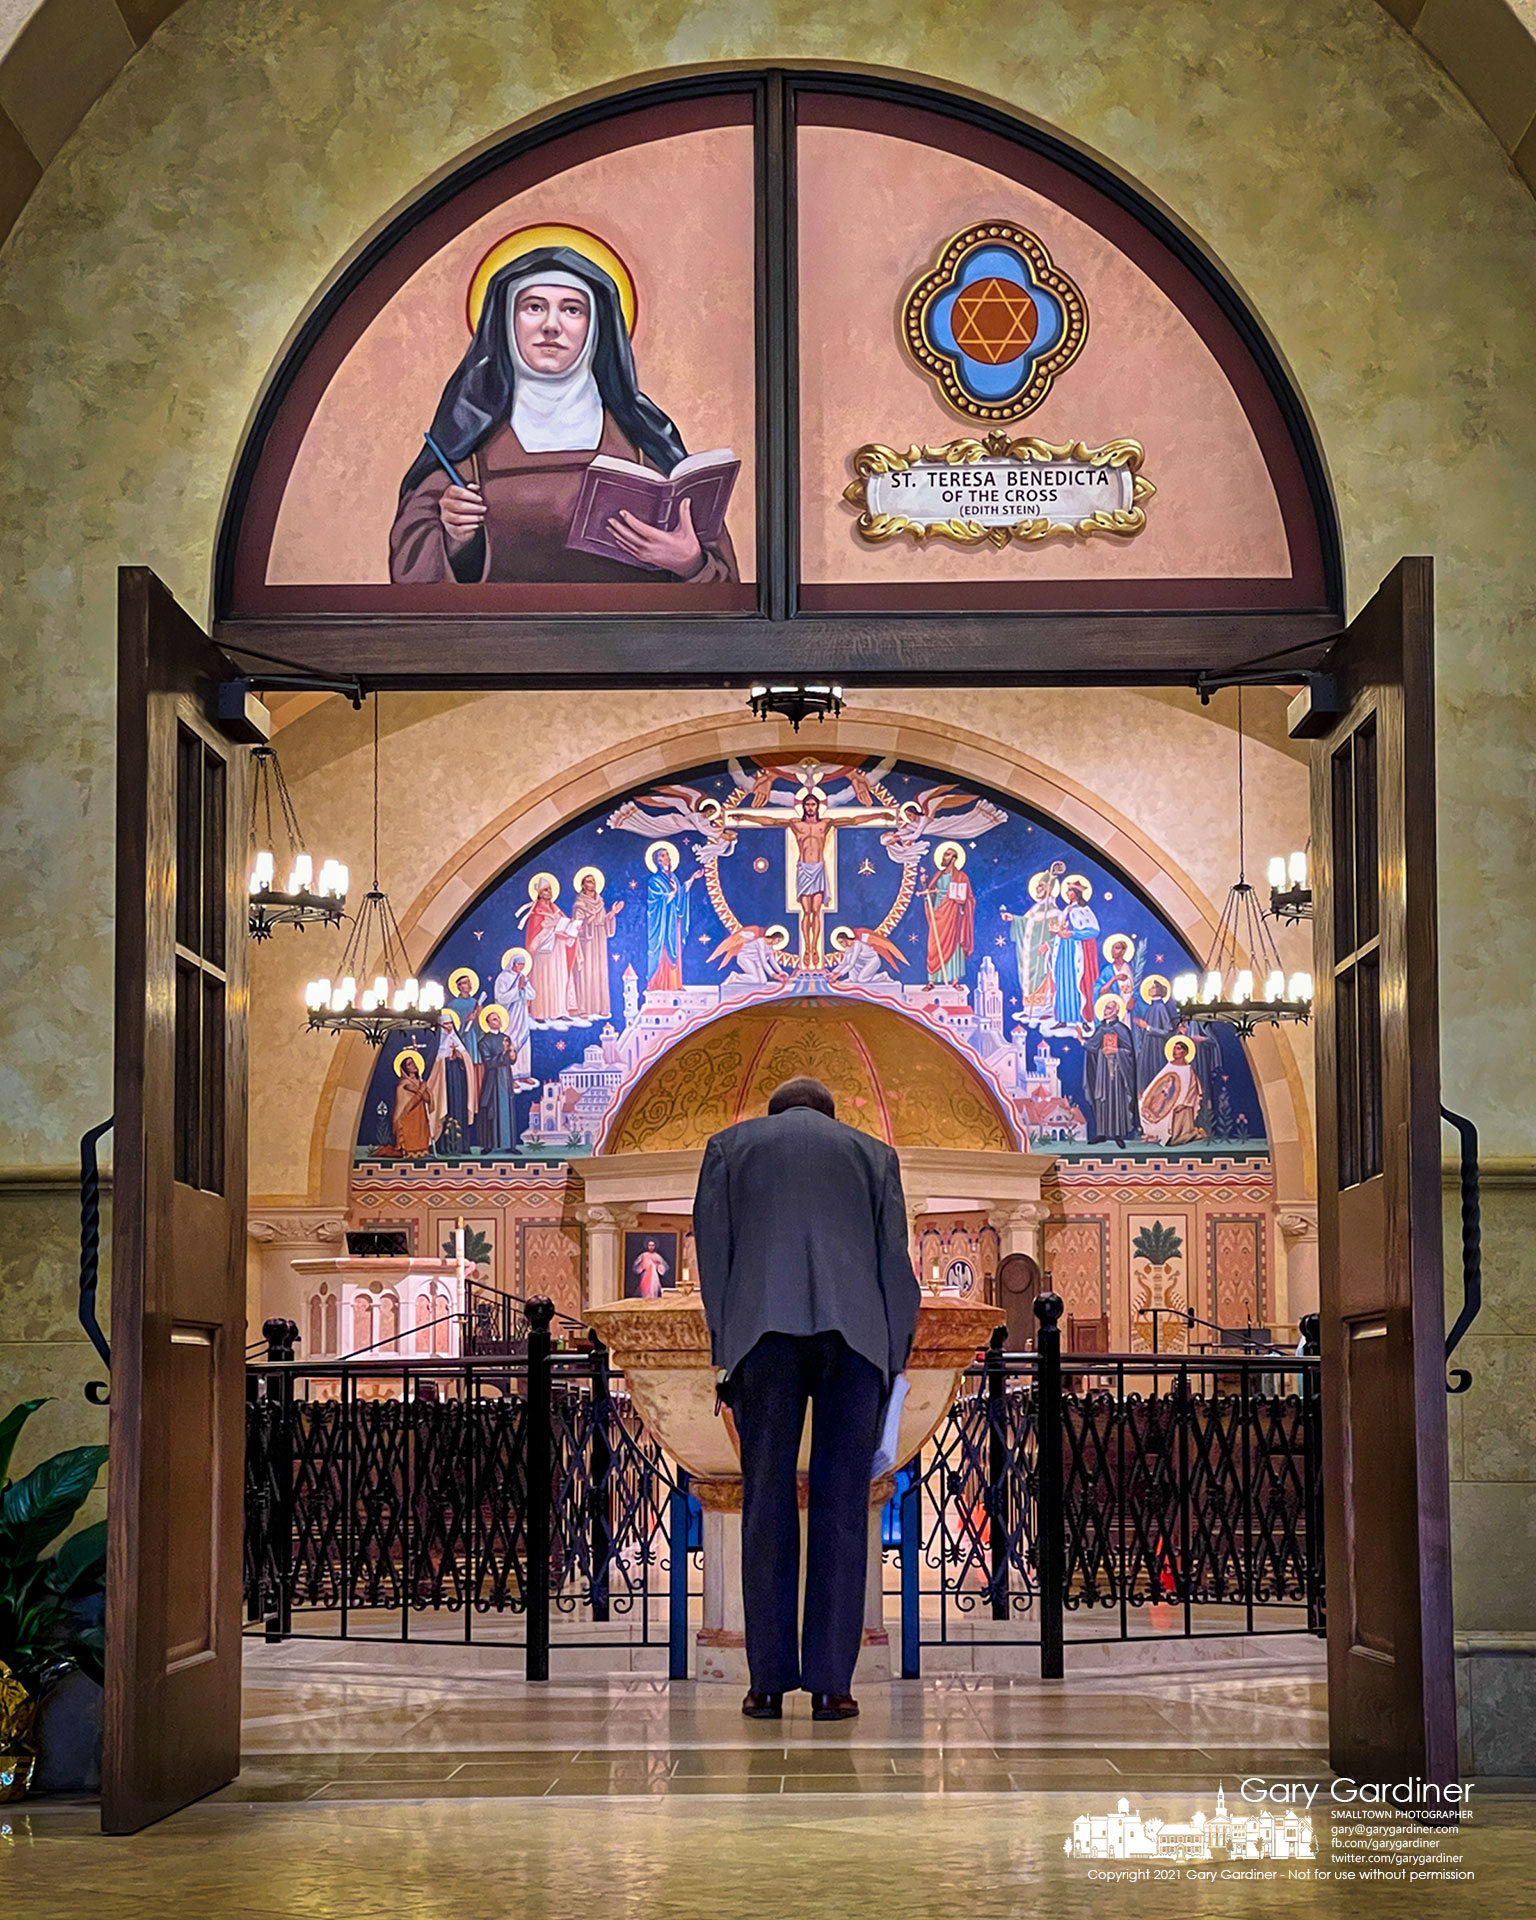 A parishioner bows as he enters St. Paul the Apostle Catholic Church for early Sunday Mass. My Final Photo for May 16, 2021.